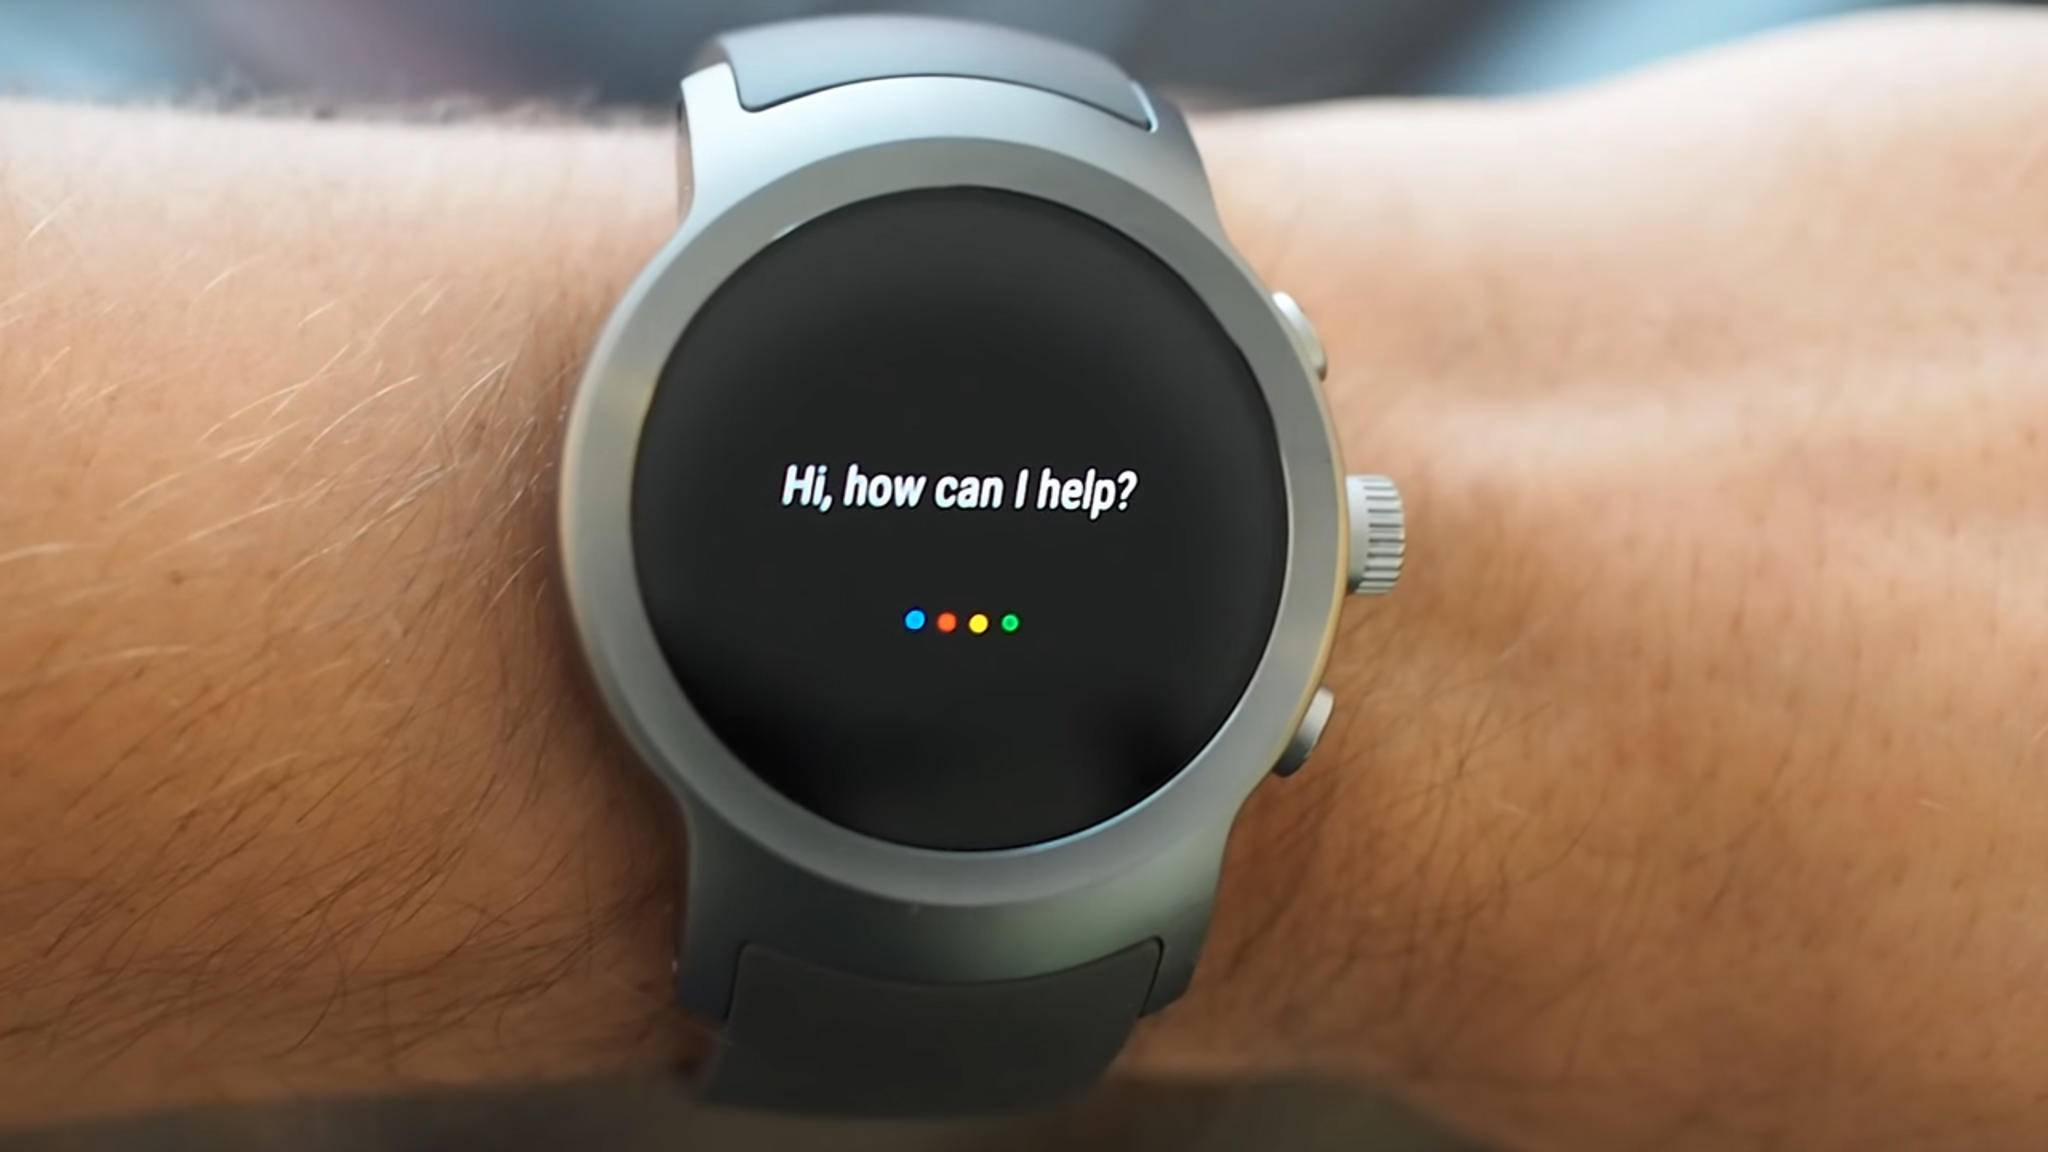 Android Wear 2.0 bringt den Google Assistant auf Smartwatches wie die LG Watch Sport.